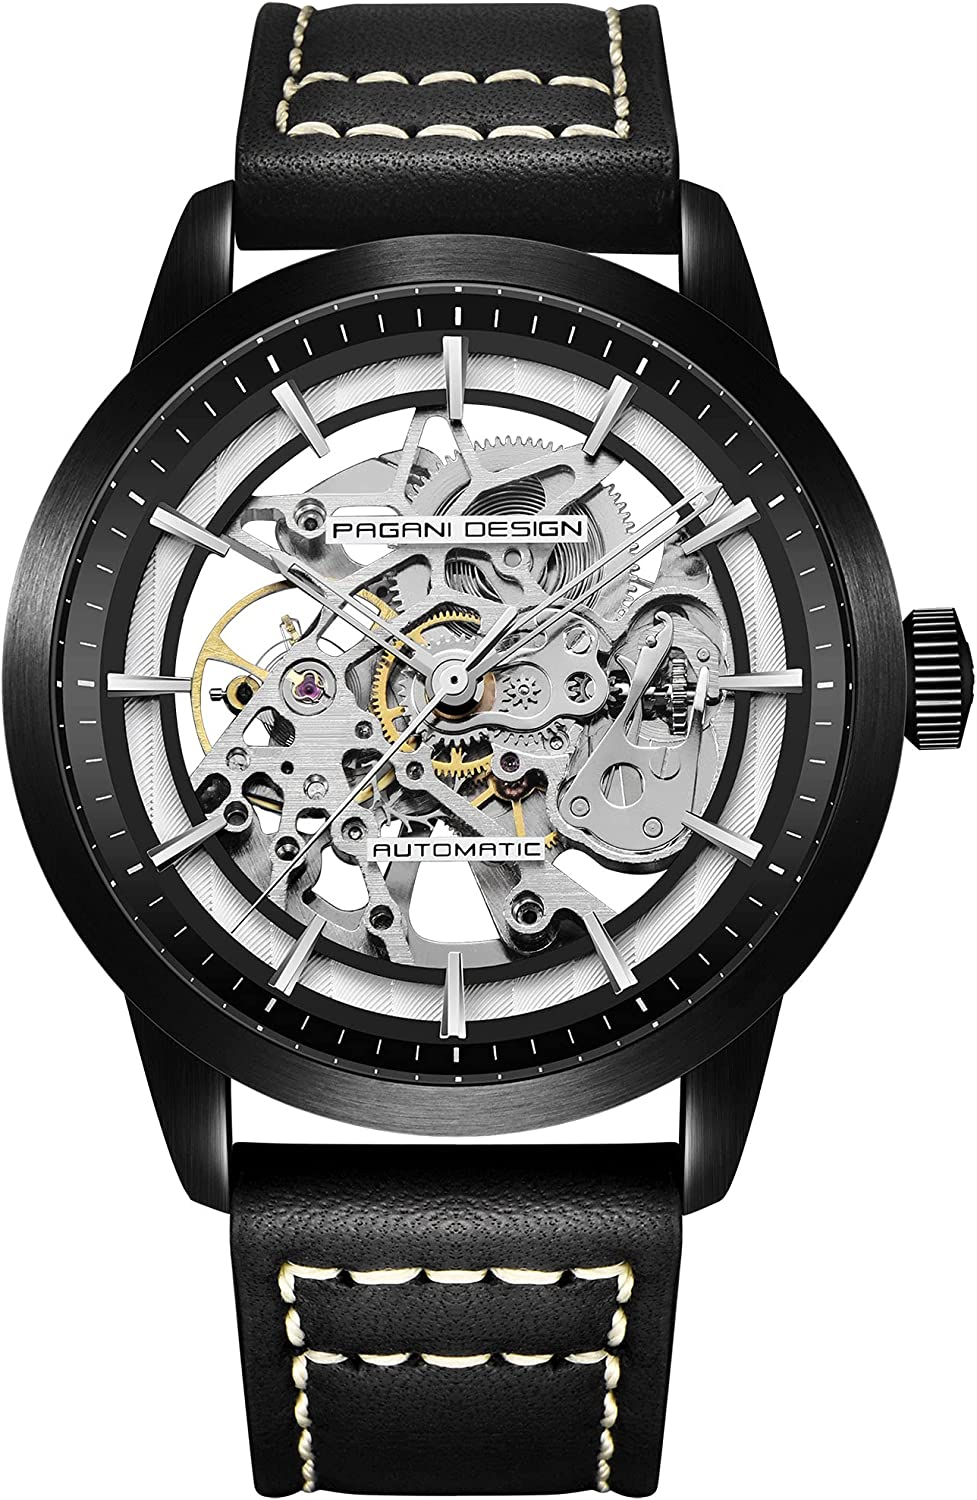 Pagani Design Automatic Max 70% OFF Watch Mens Long Beach Mall Skeleton Watches S Mechanical